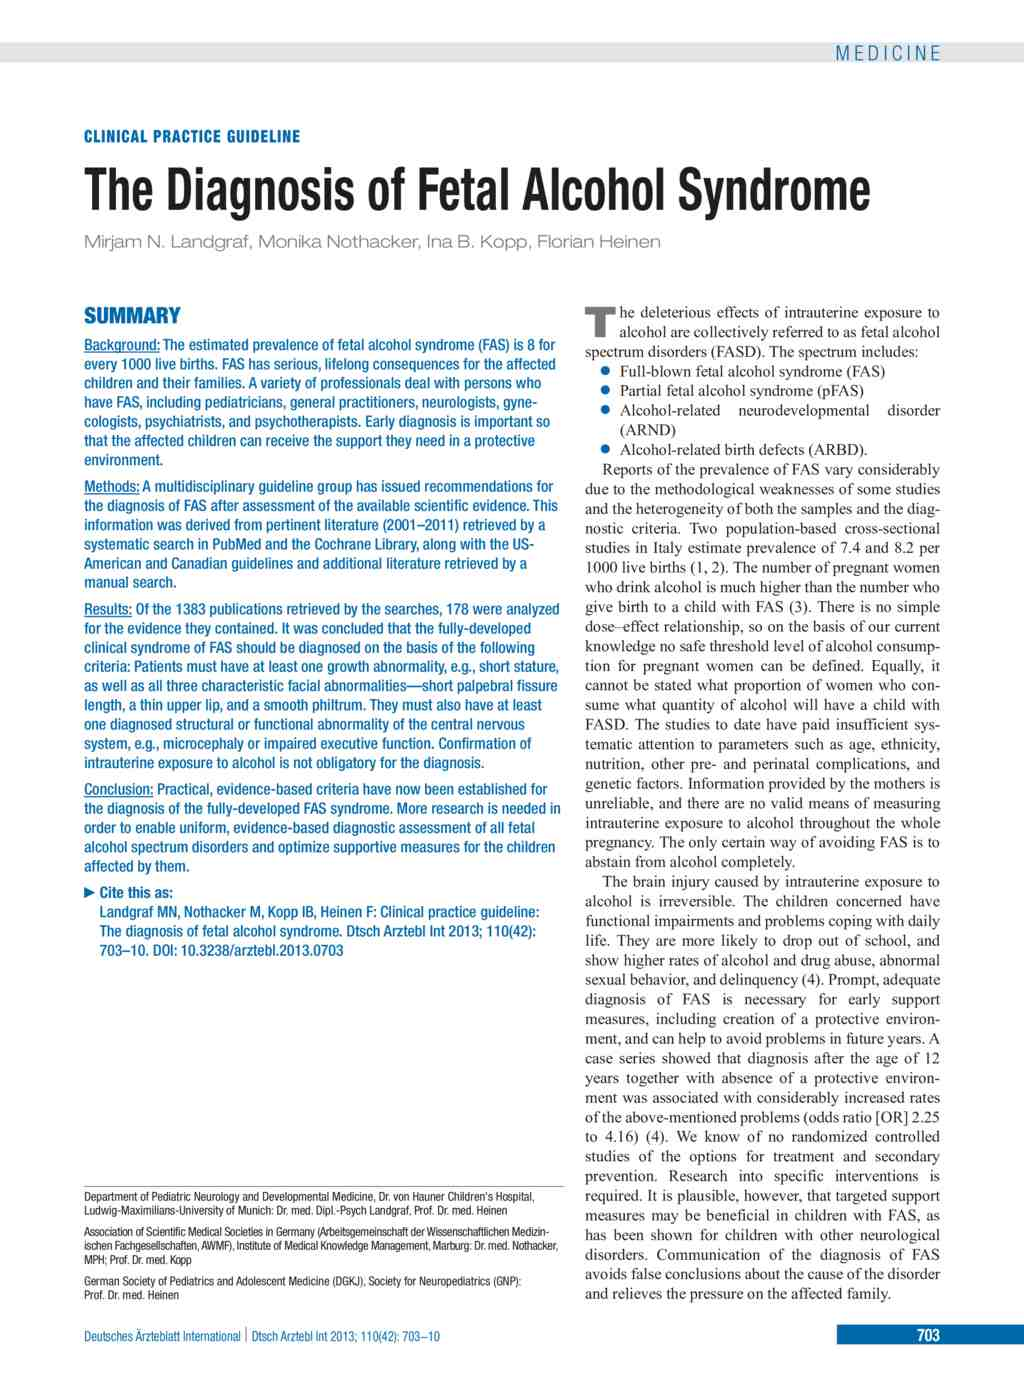 an analysis of the fetal alcohol syndrome in the development of a fetus